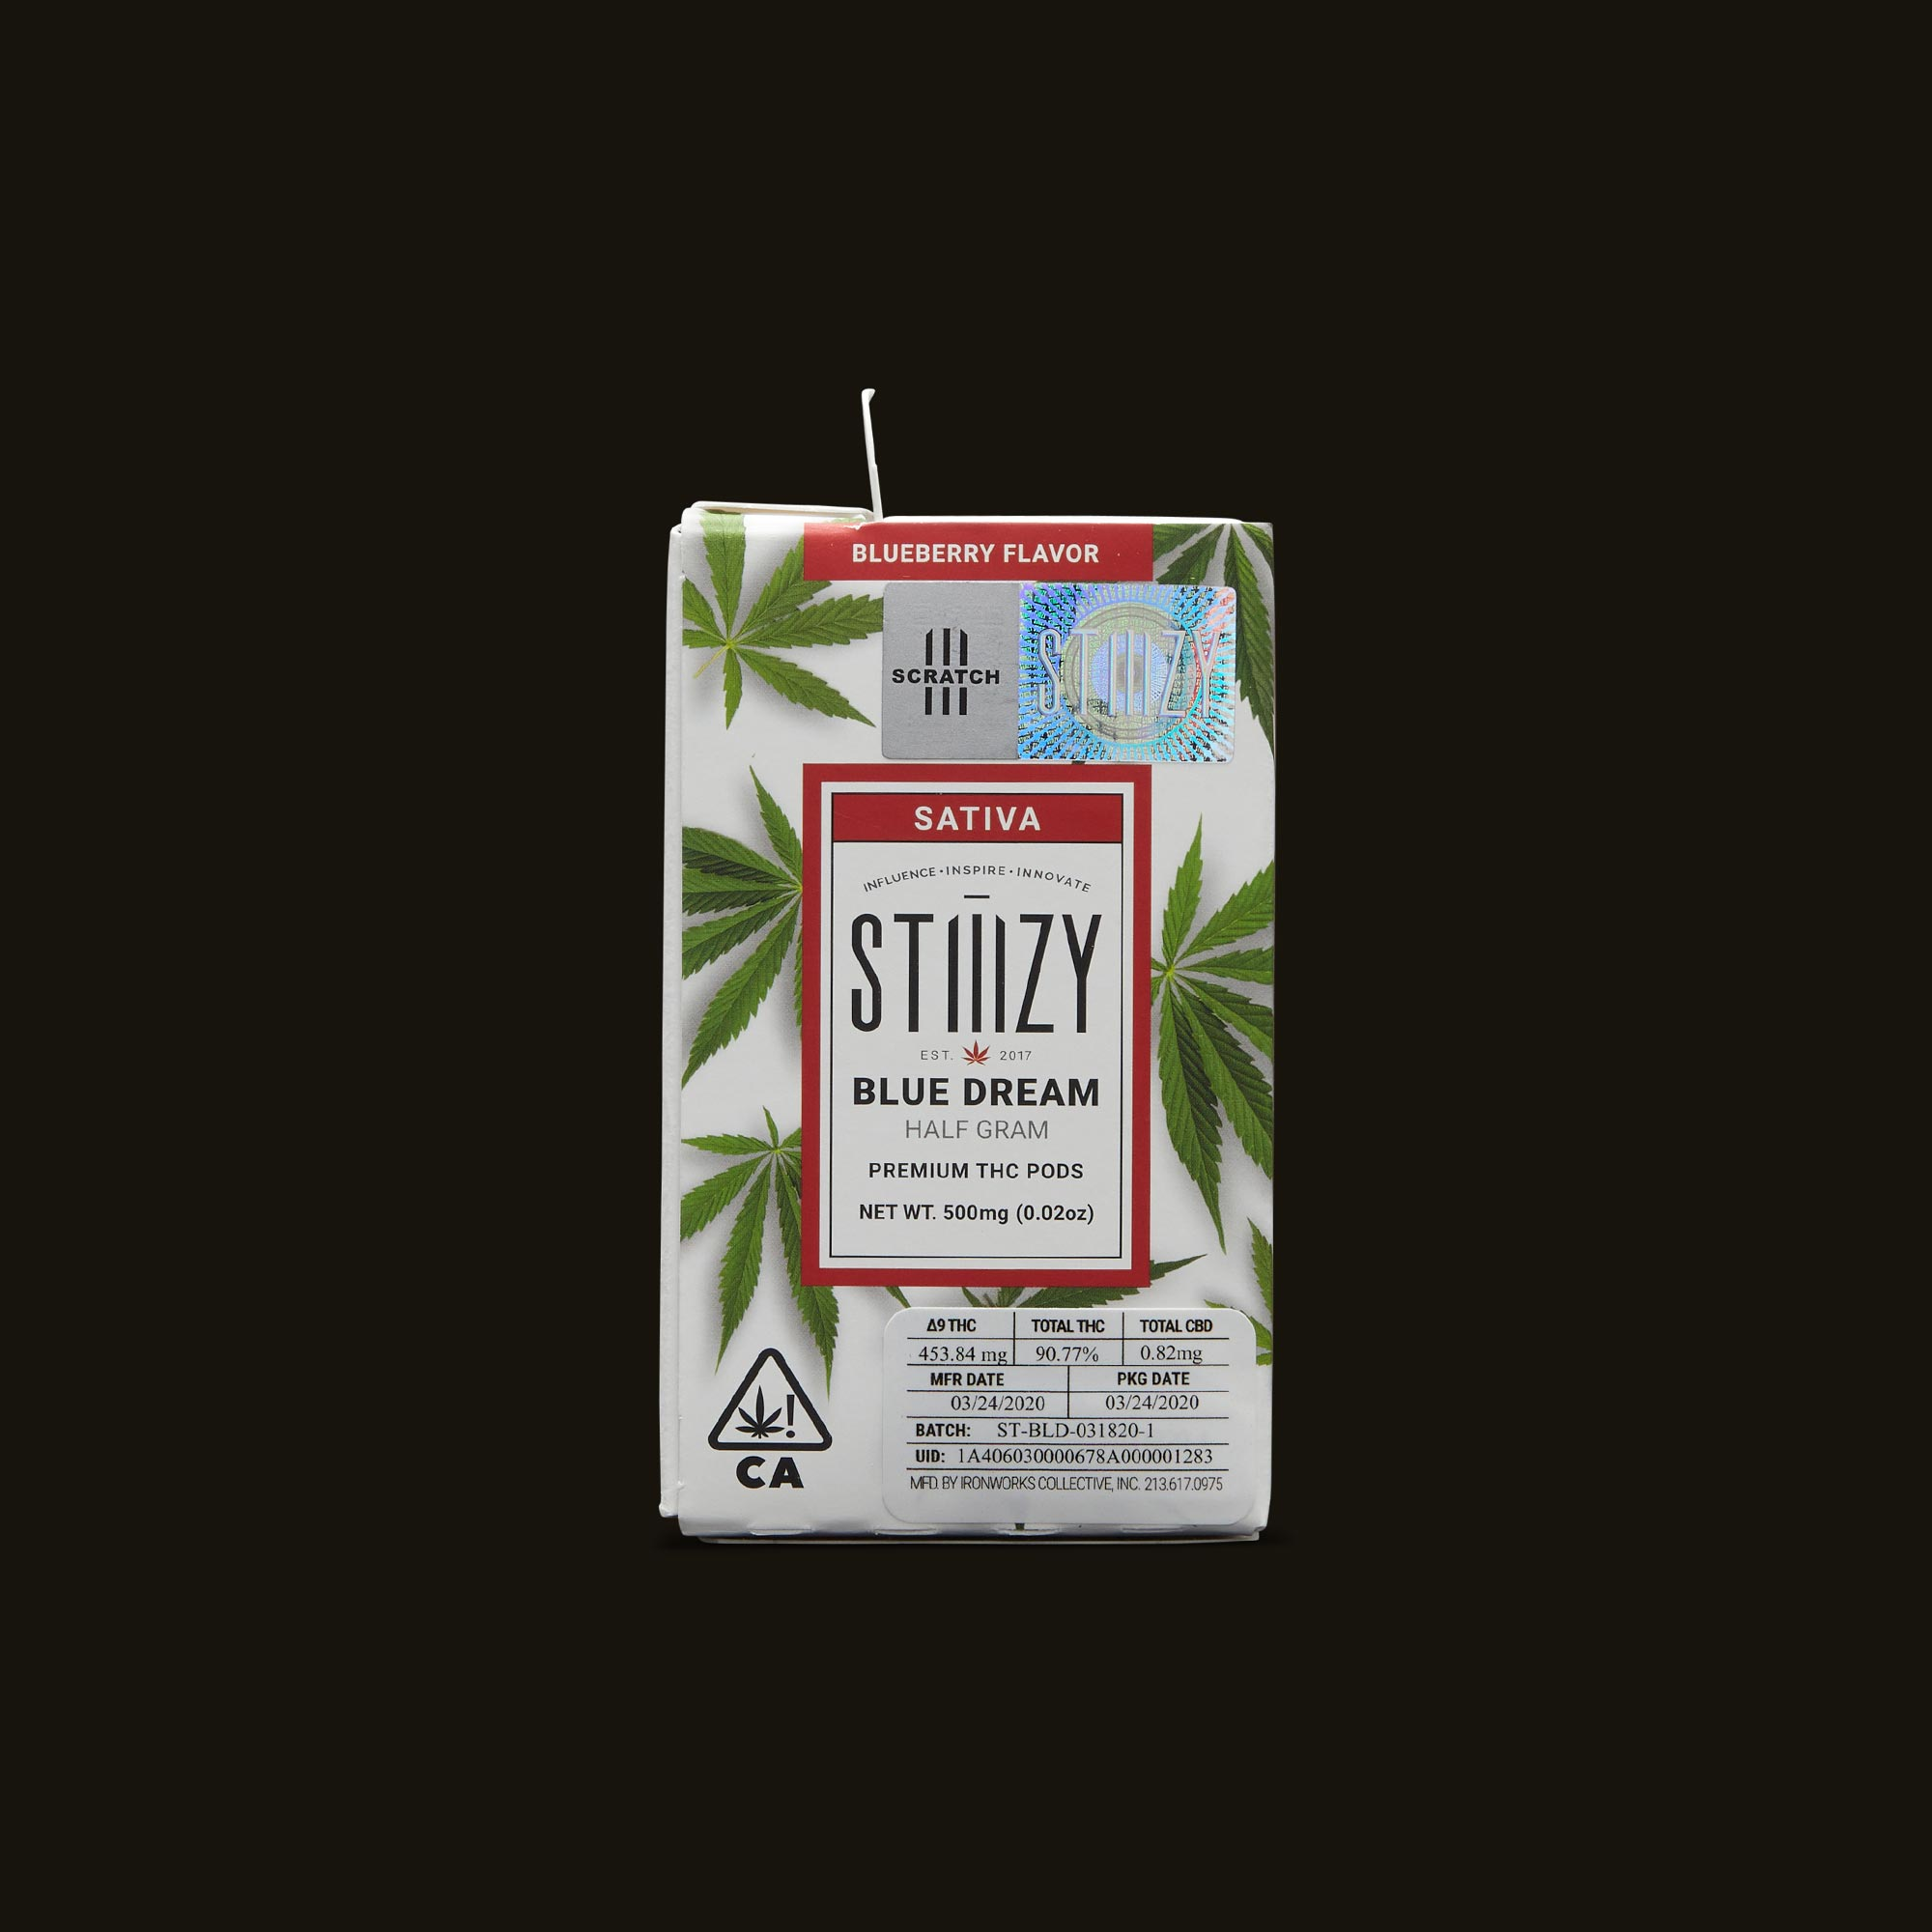 Package of Stiiizy Blue Dream Premium THC POD